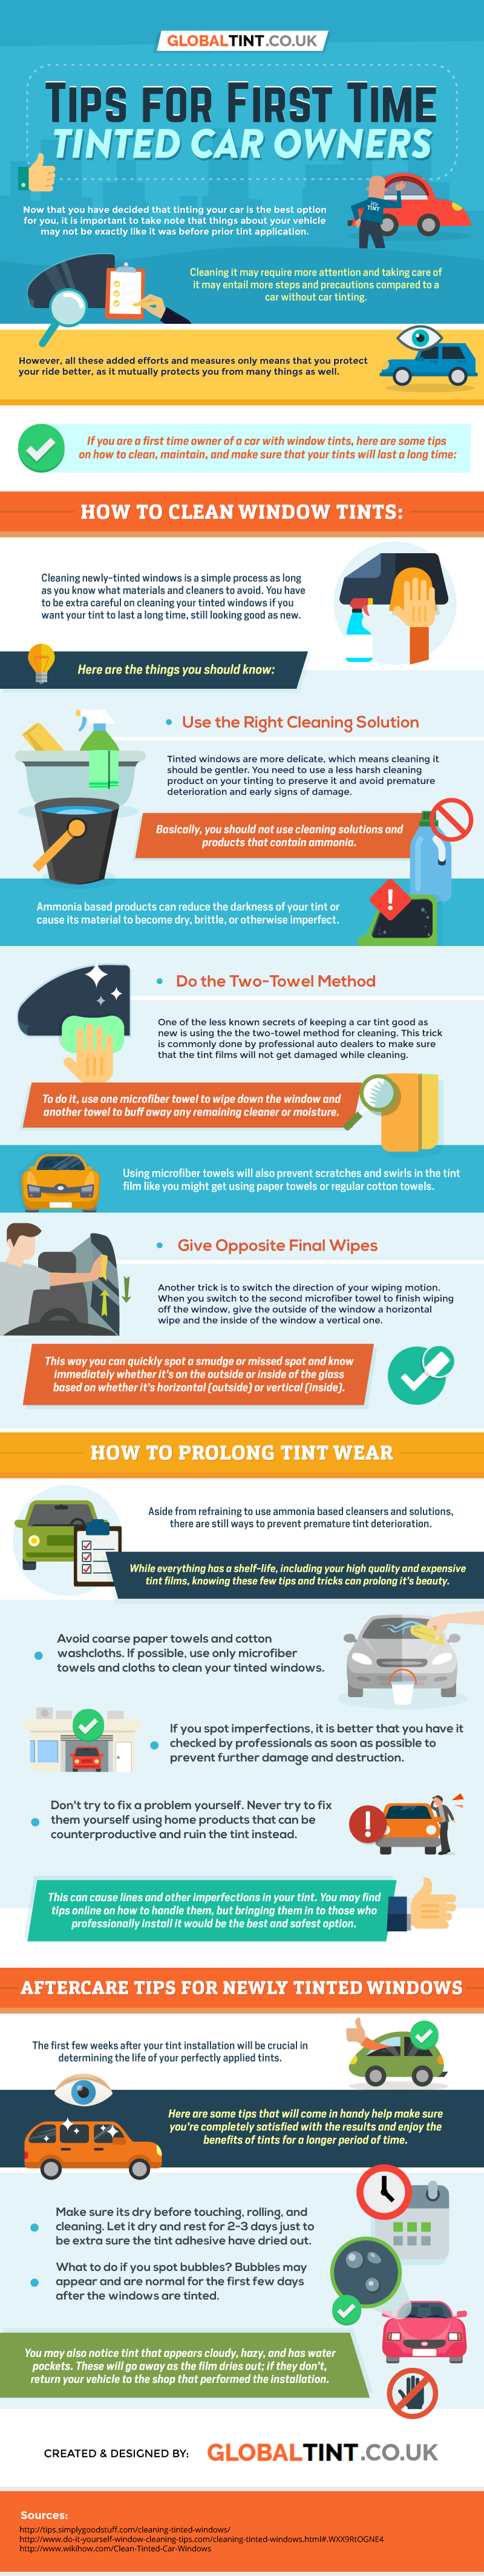 Tips For First Time Tinted Car Owners